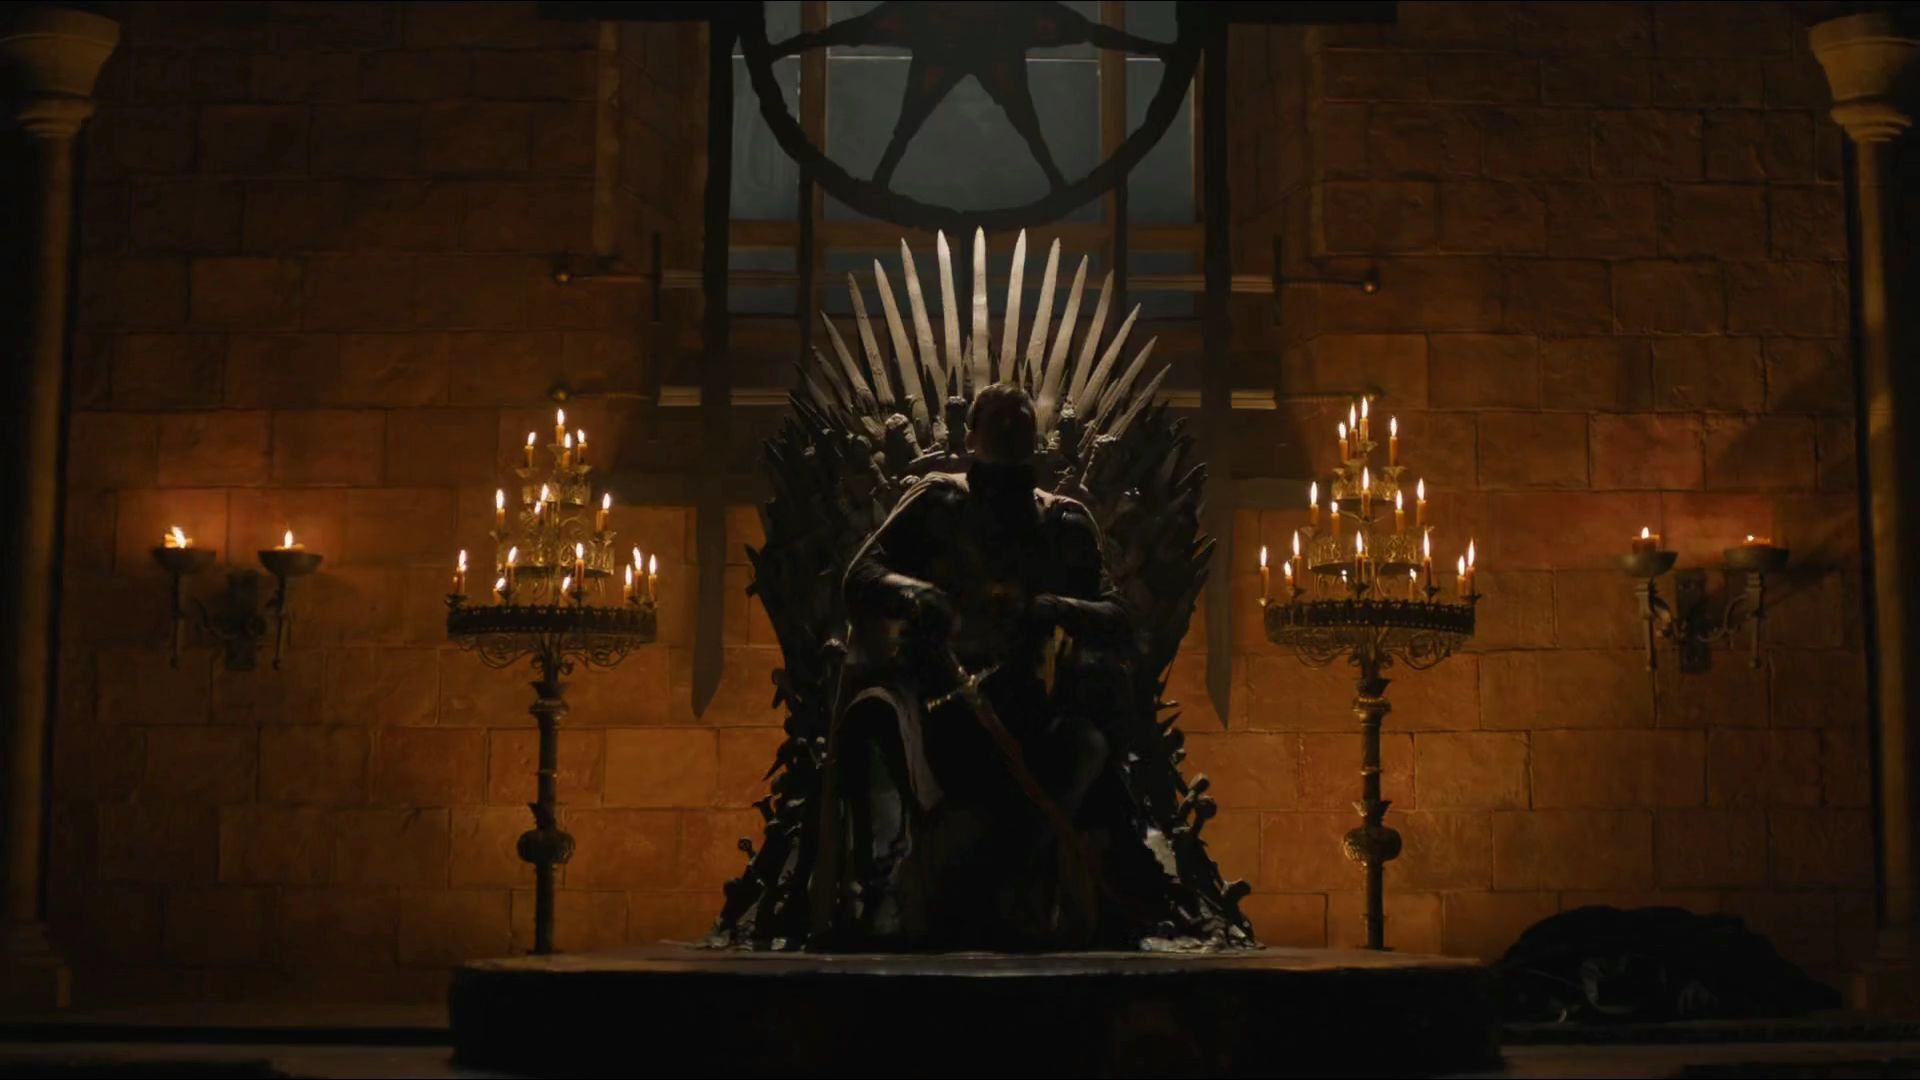 Bookies are taking bets on who will ultimately sit the Iron Throne, and giving odds on every character